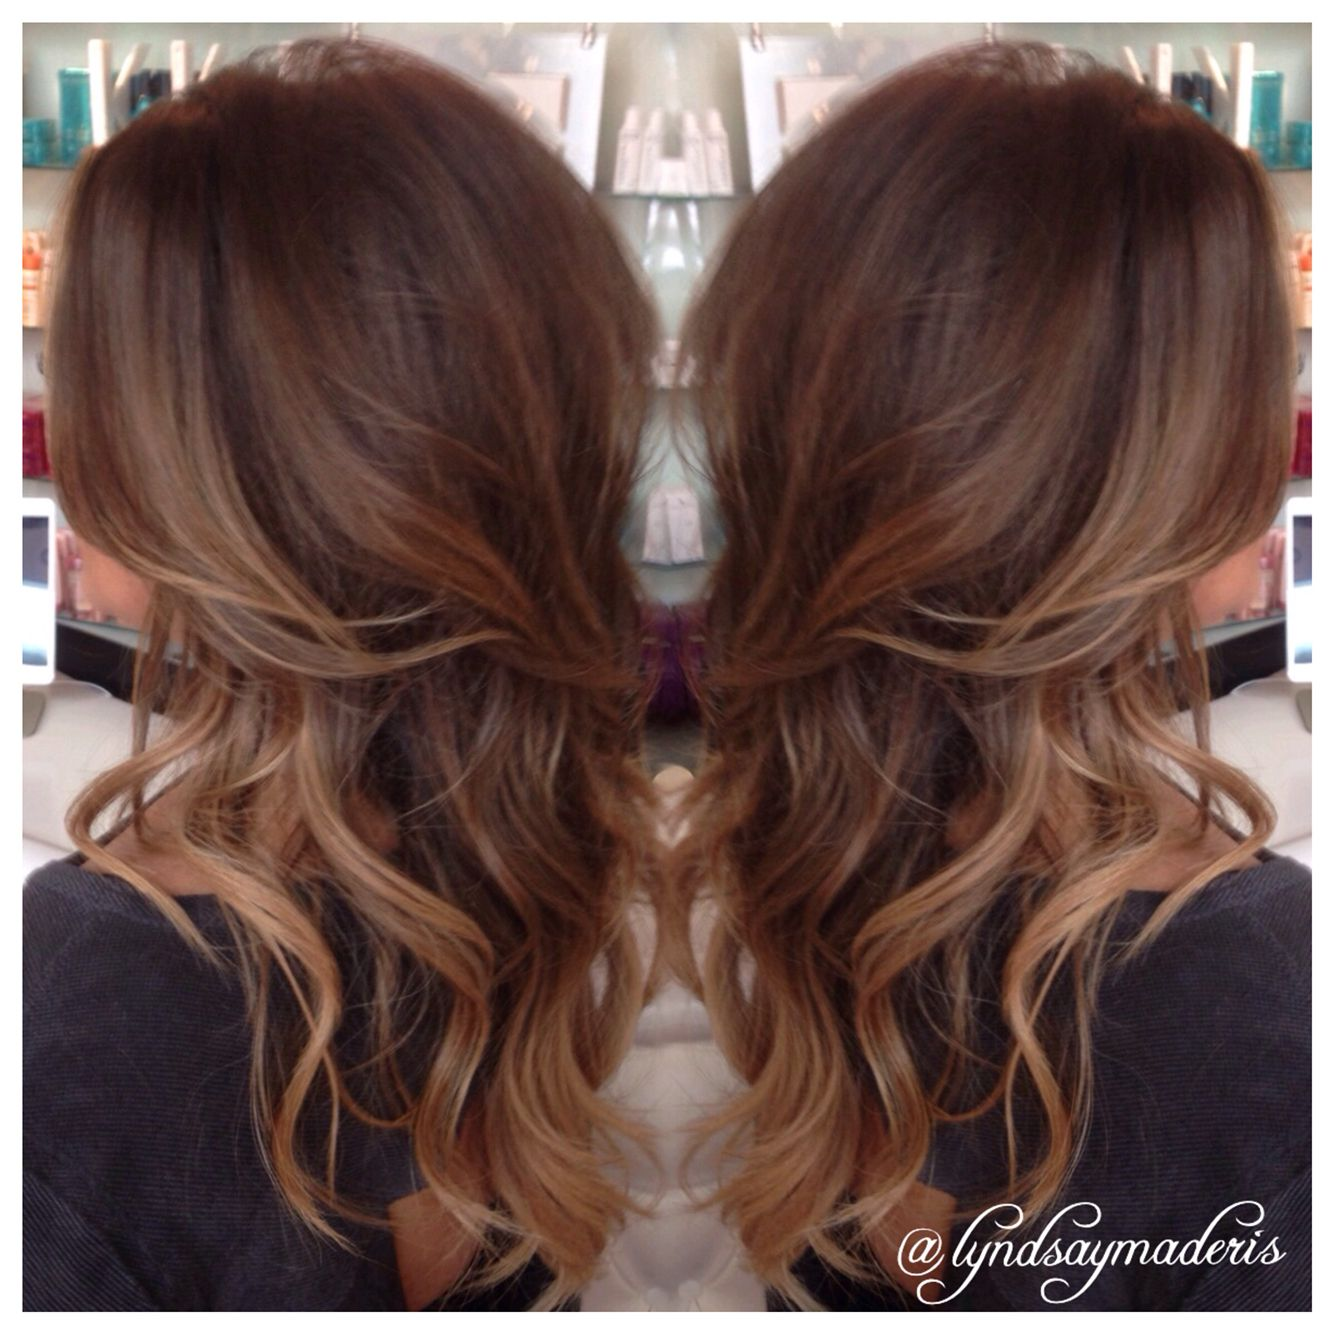 Balayage Carmel Hair Painting And Added Volume With Great Lengths